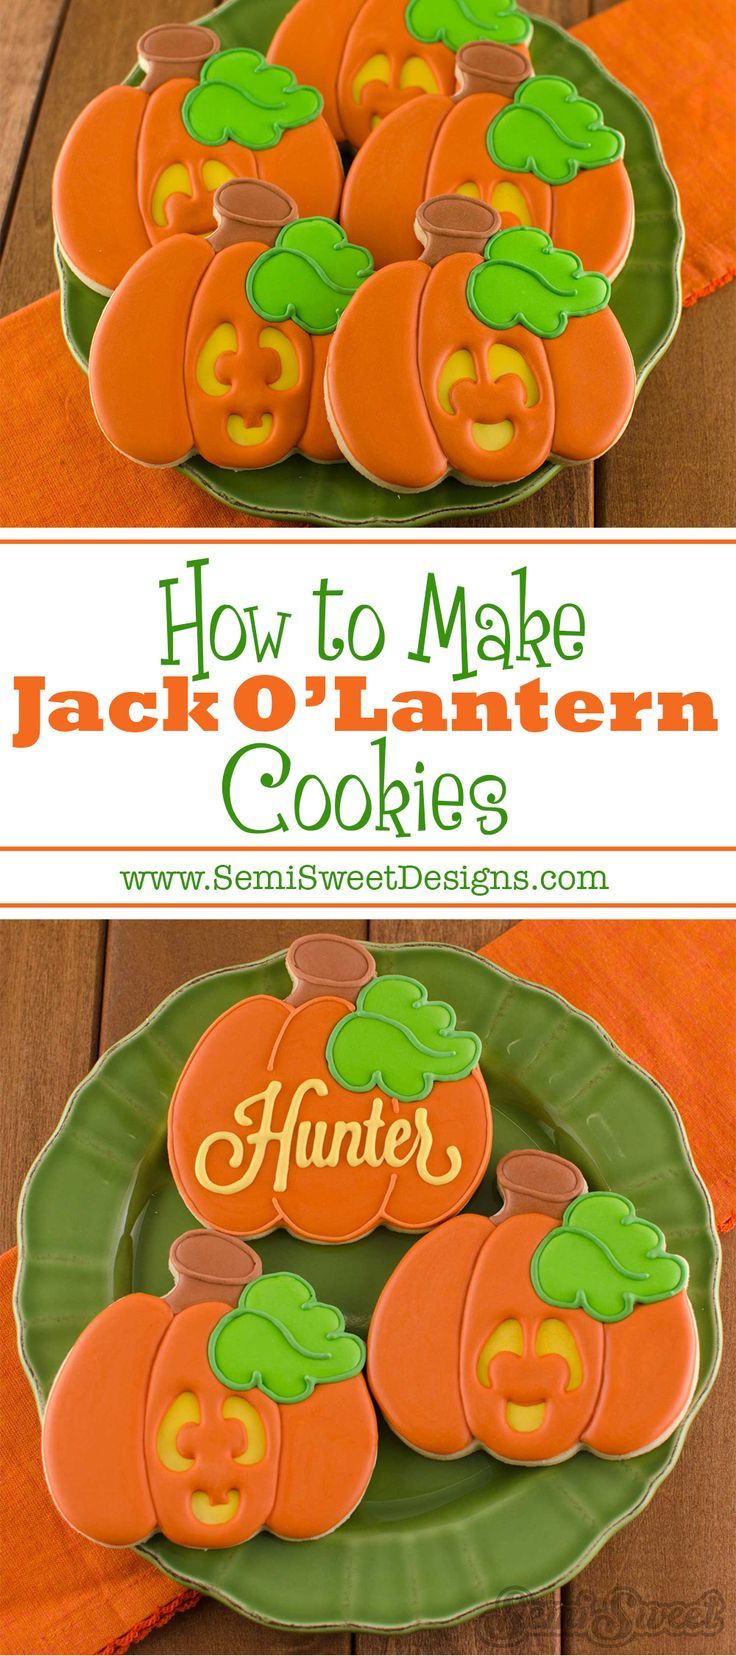 How to Make Jack O' Lantern Cookies by www.SemiSweetDesigns.com